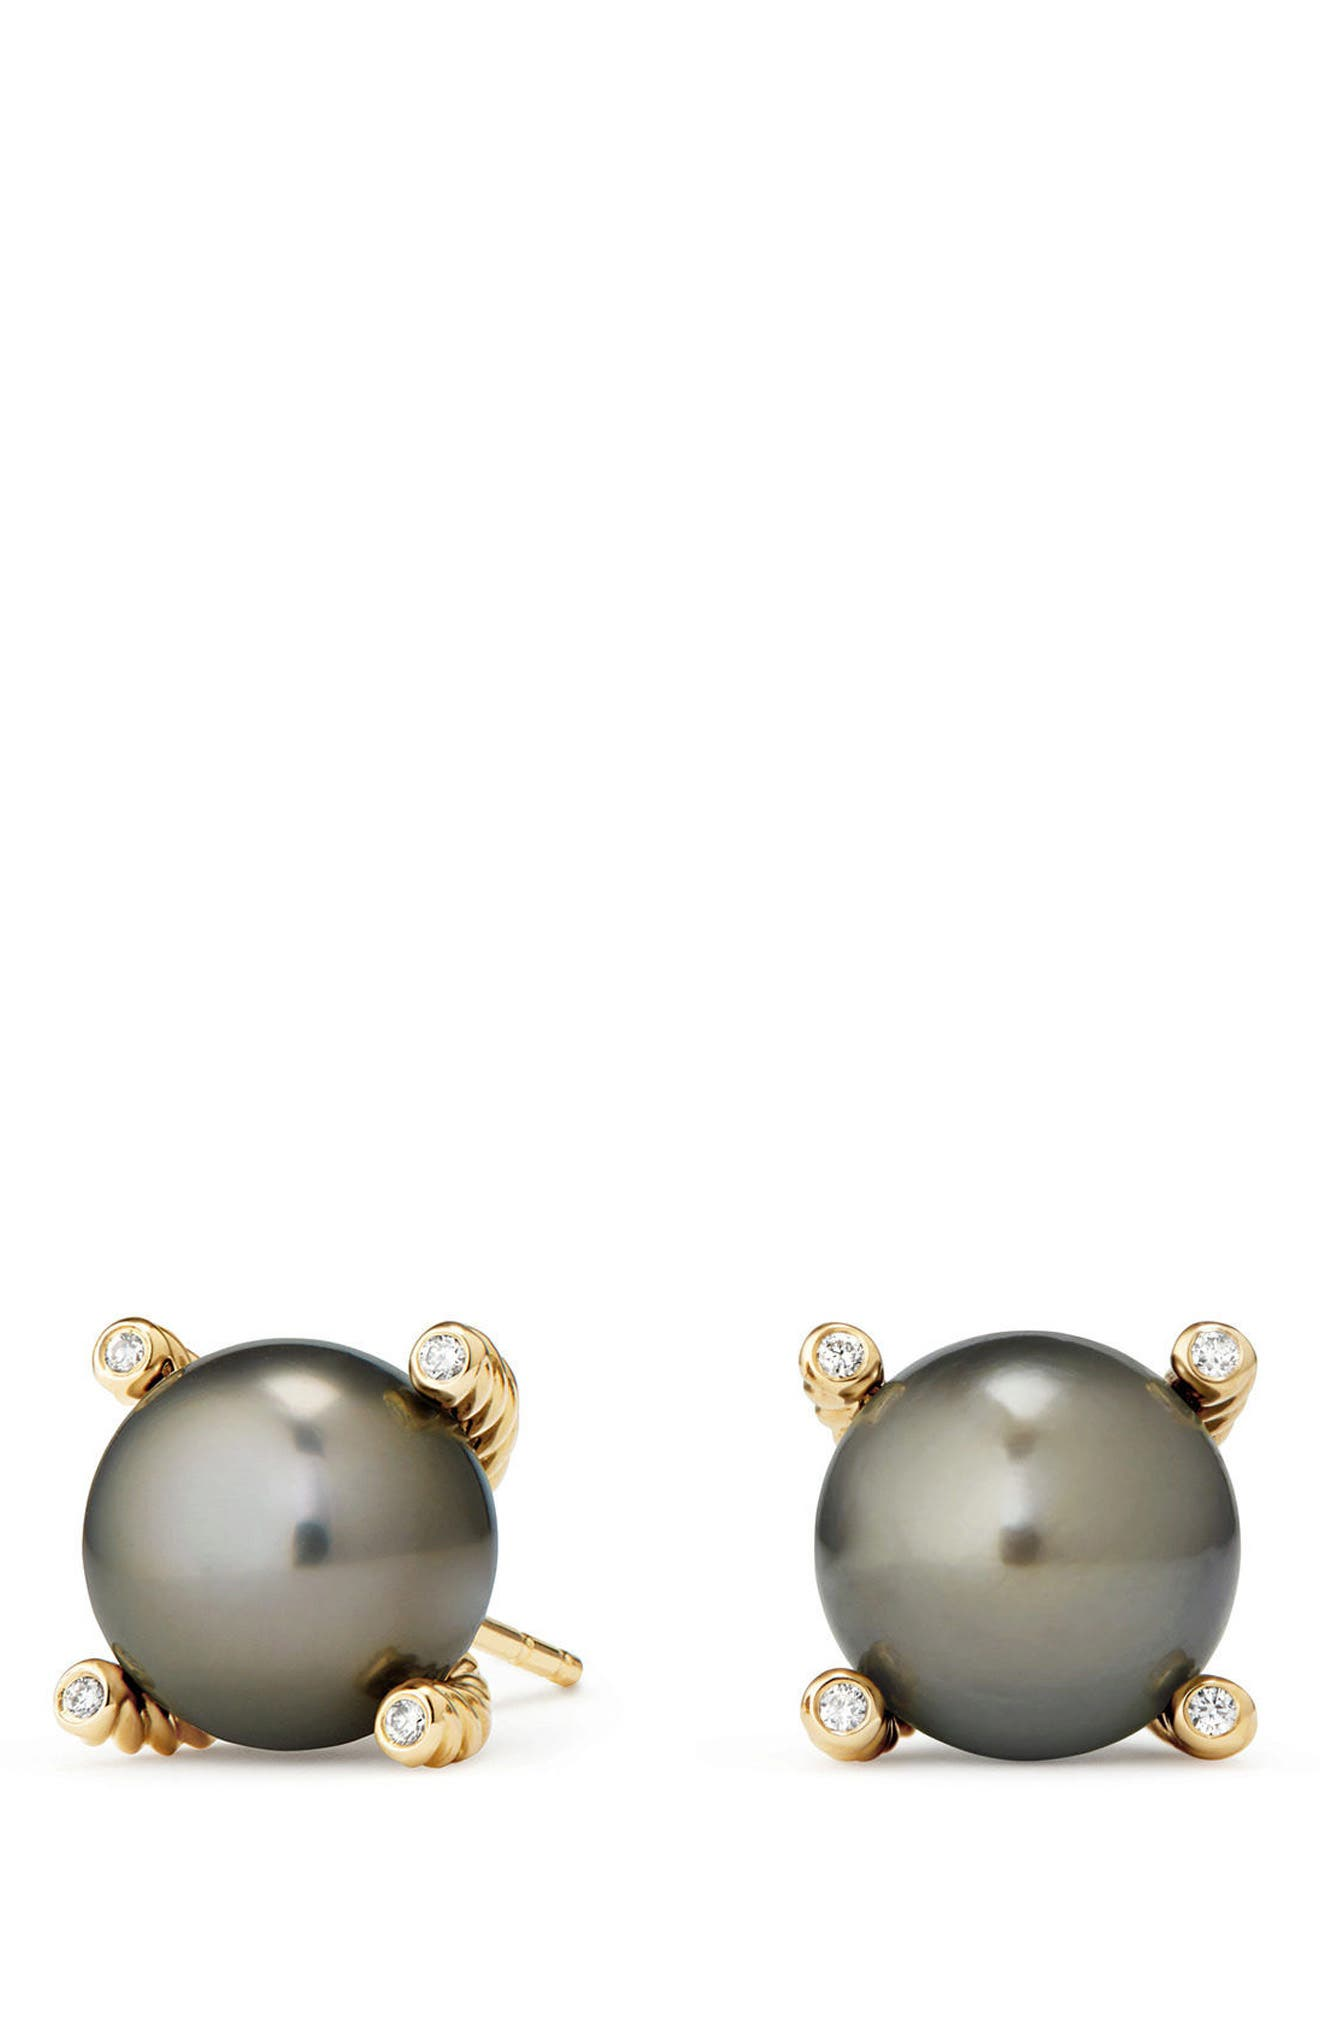 Genuine Pearl Earrings with Diamonds in 18K Gold,                         Main,                         color, GOLD/ TAHITIAN GREY PEARL